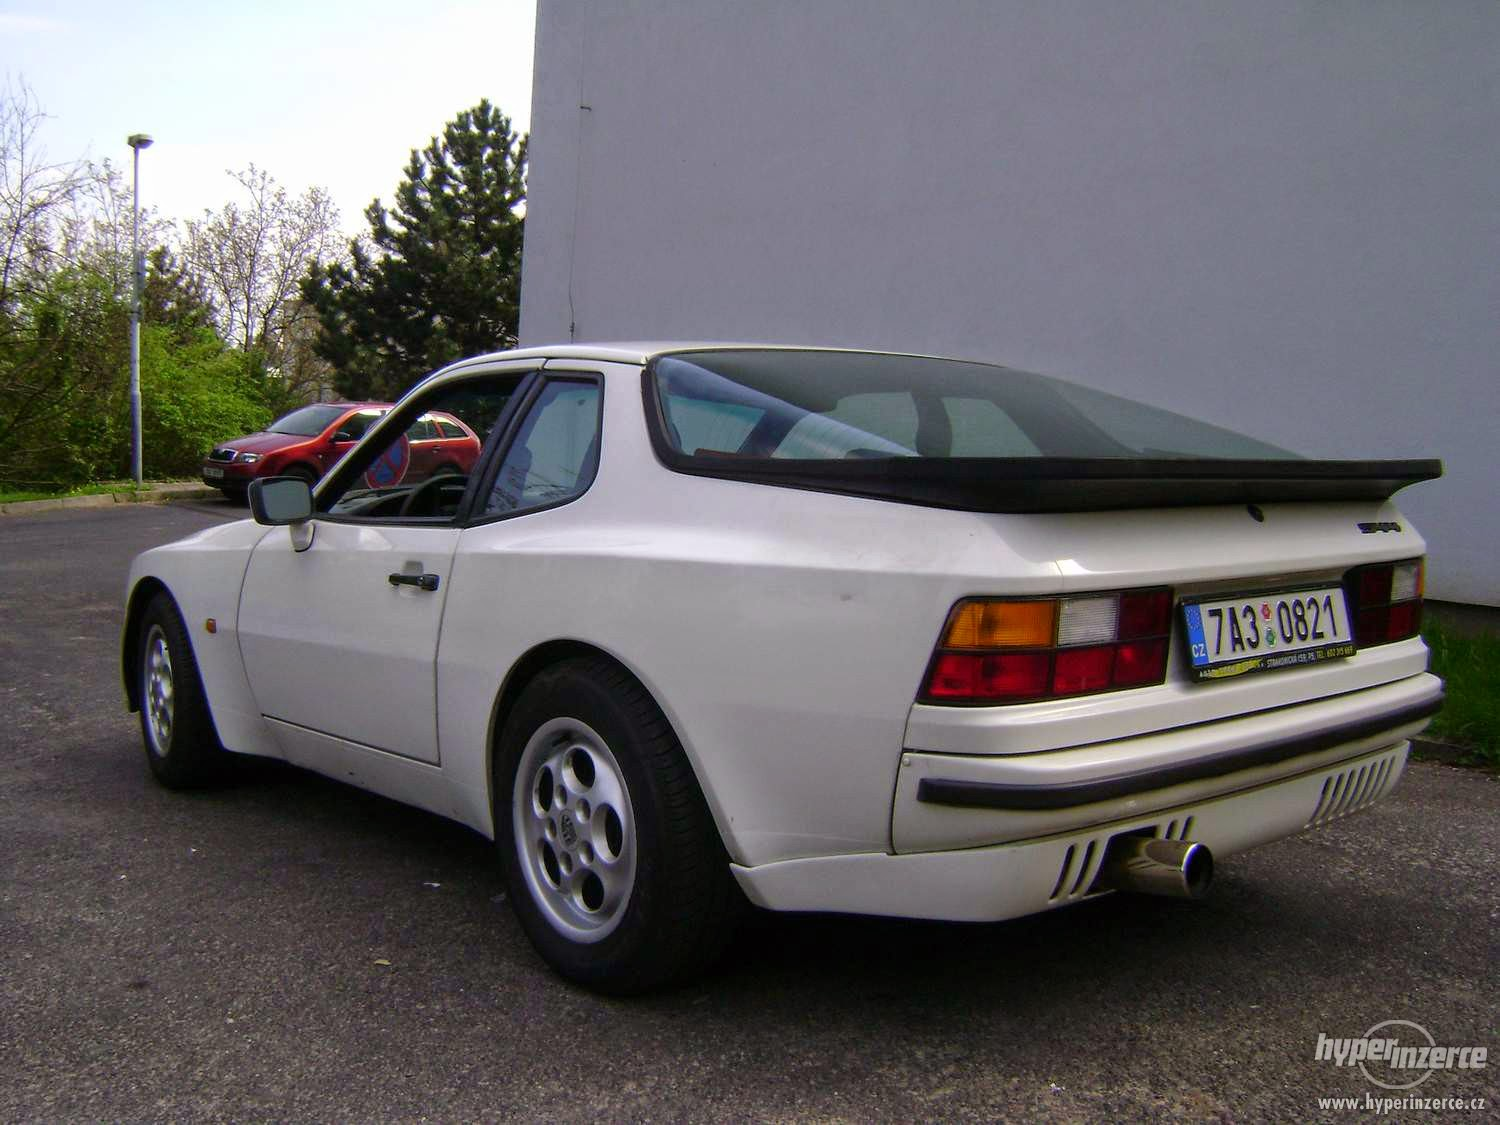 used car pictures used cars porsche czech republic praha pre owned for sale. Black Bedroom Furniture Sets. Home Design Ideas